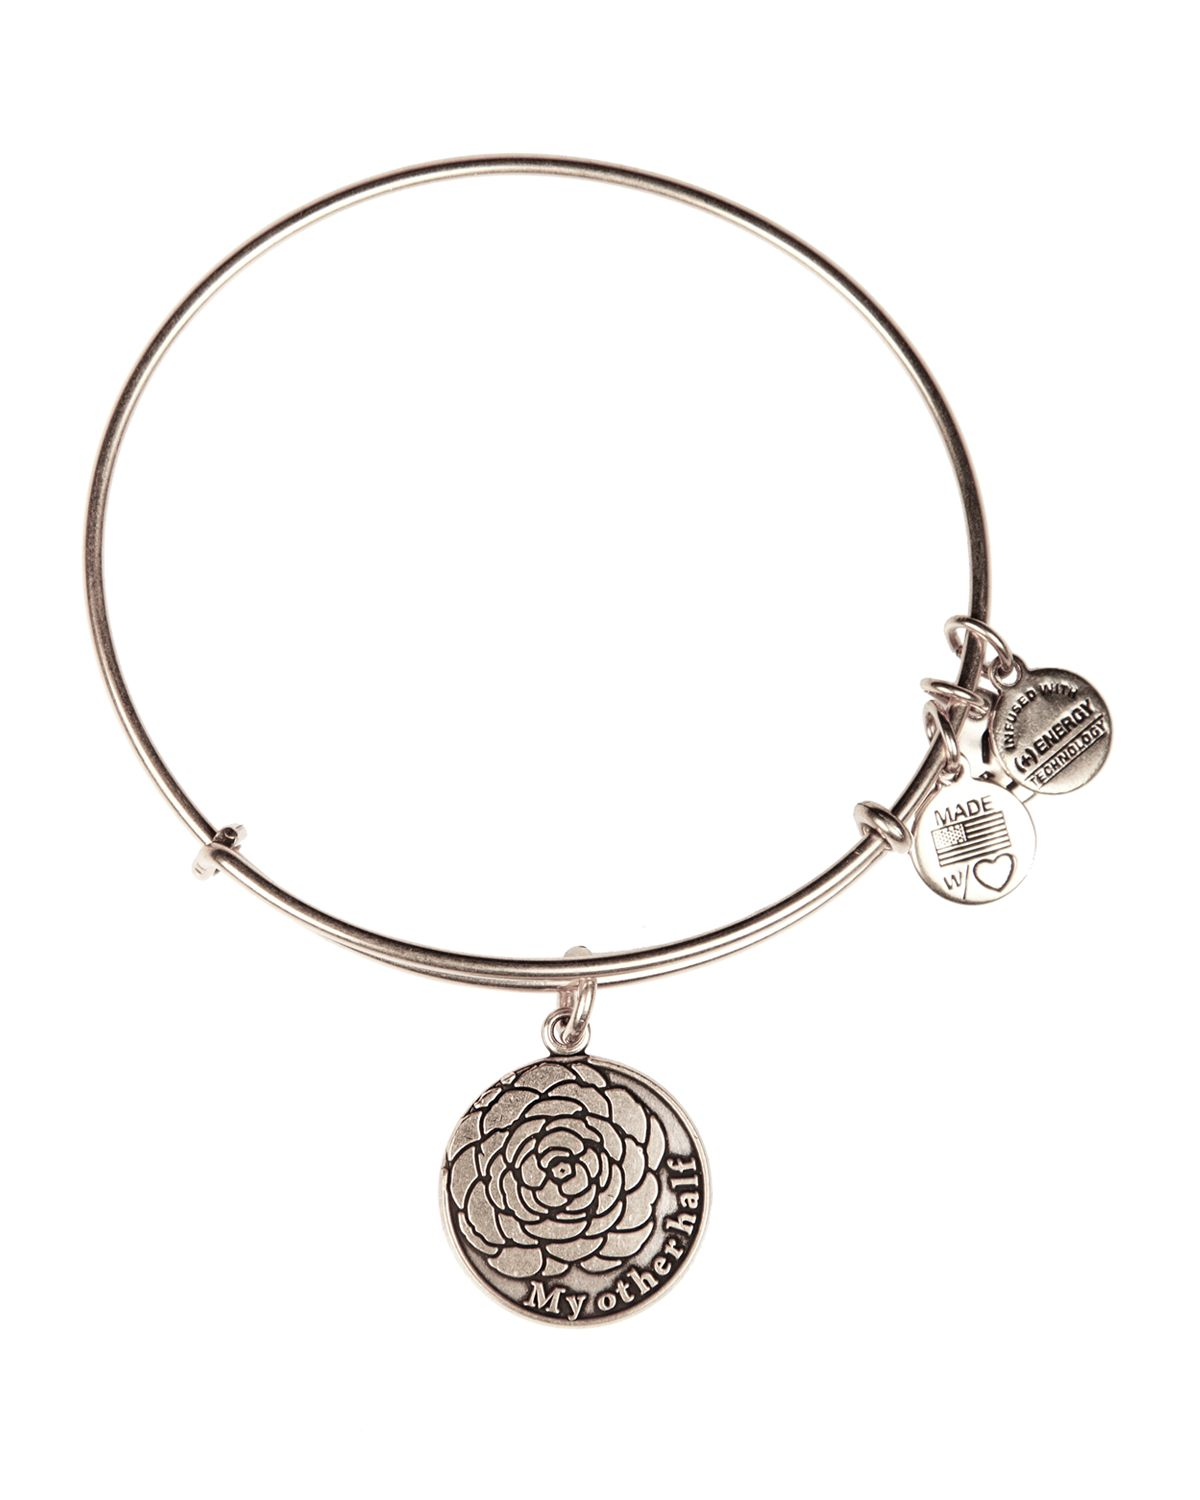 Alex And Ani Charm Bracelets: Alex And Ani My Other Half Expandable Wire Bangle